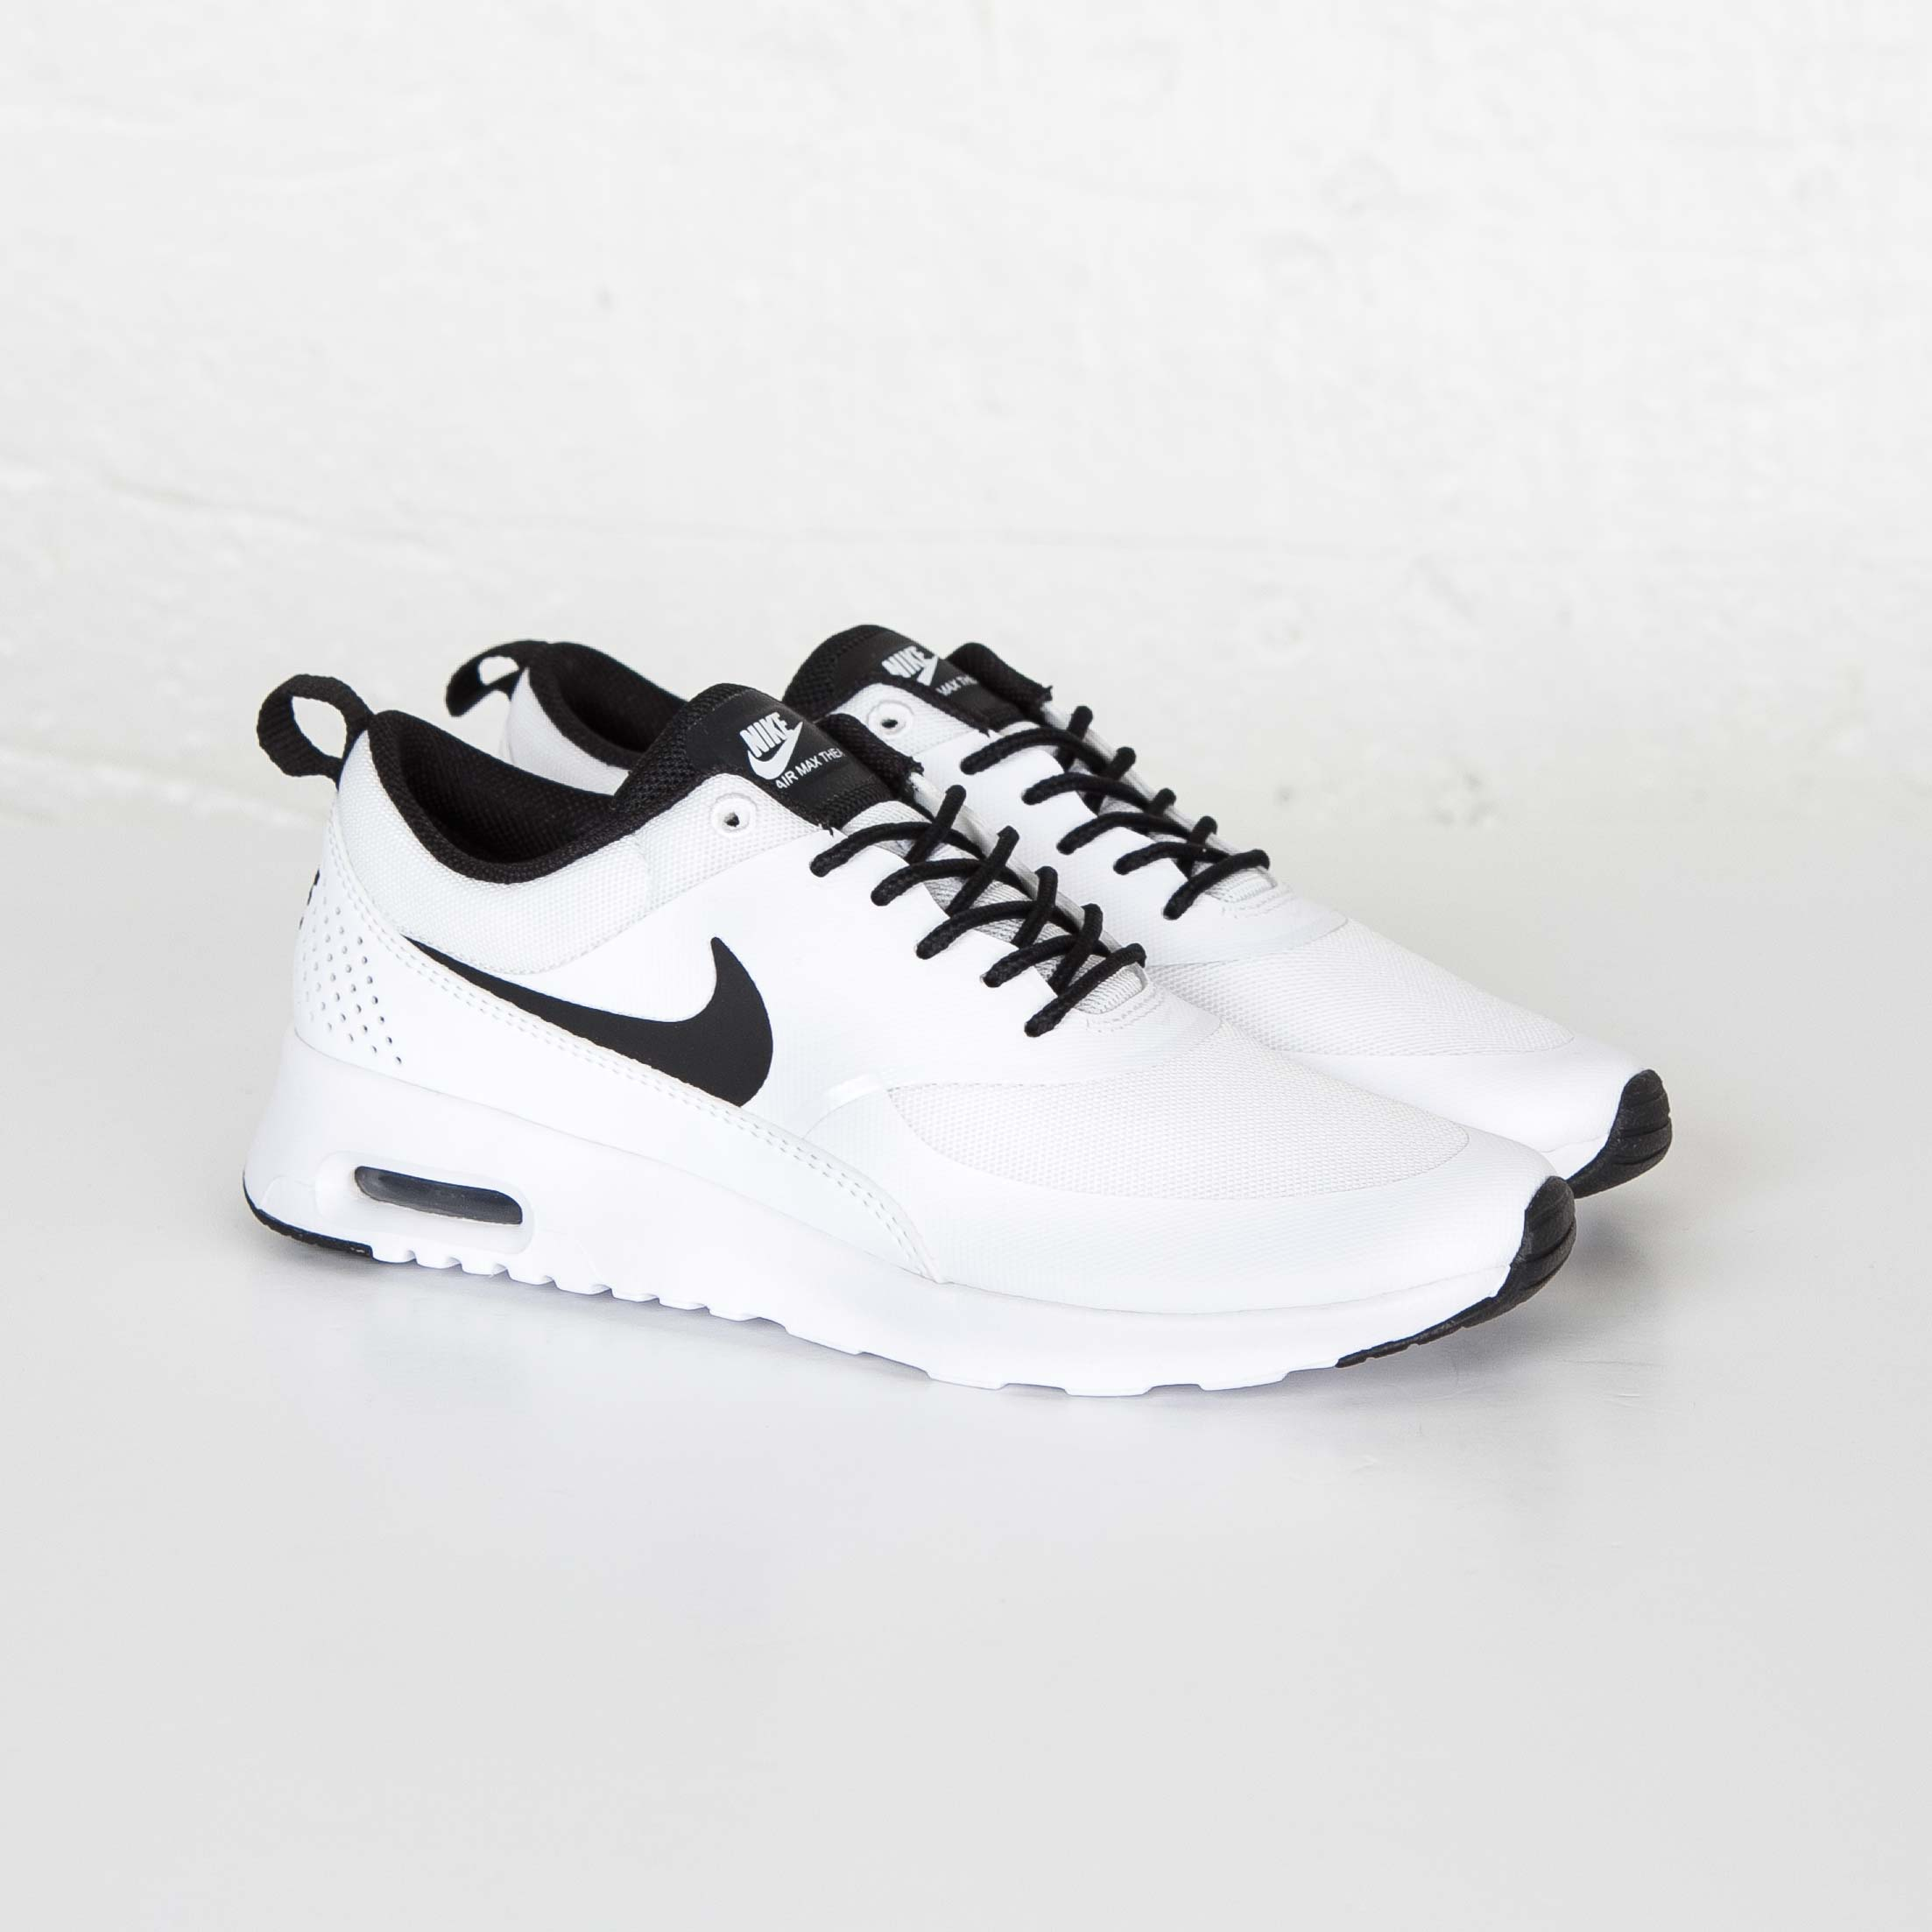 6b4a896cf7 Nike Wmns Air Max Thea - 599409-102 - Sneakersnstuff | sneakers ...